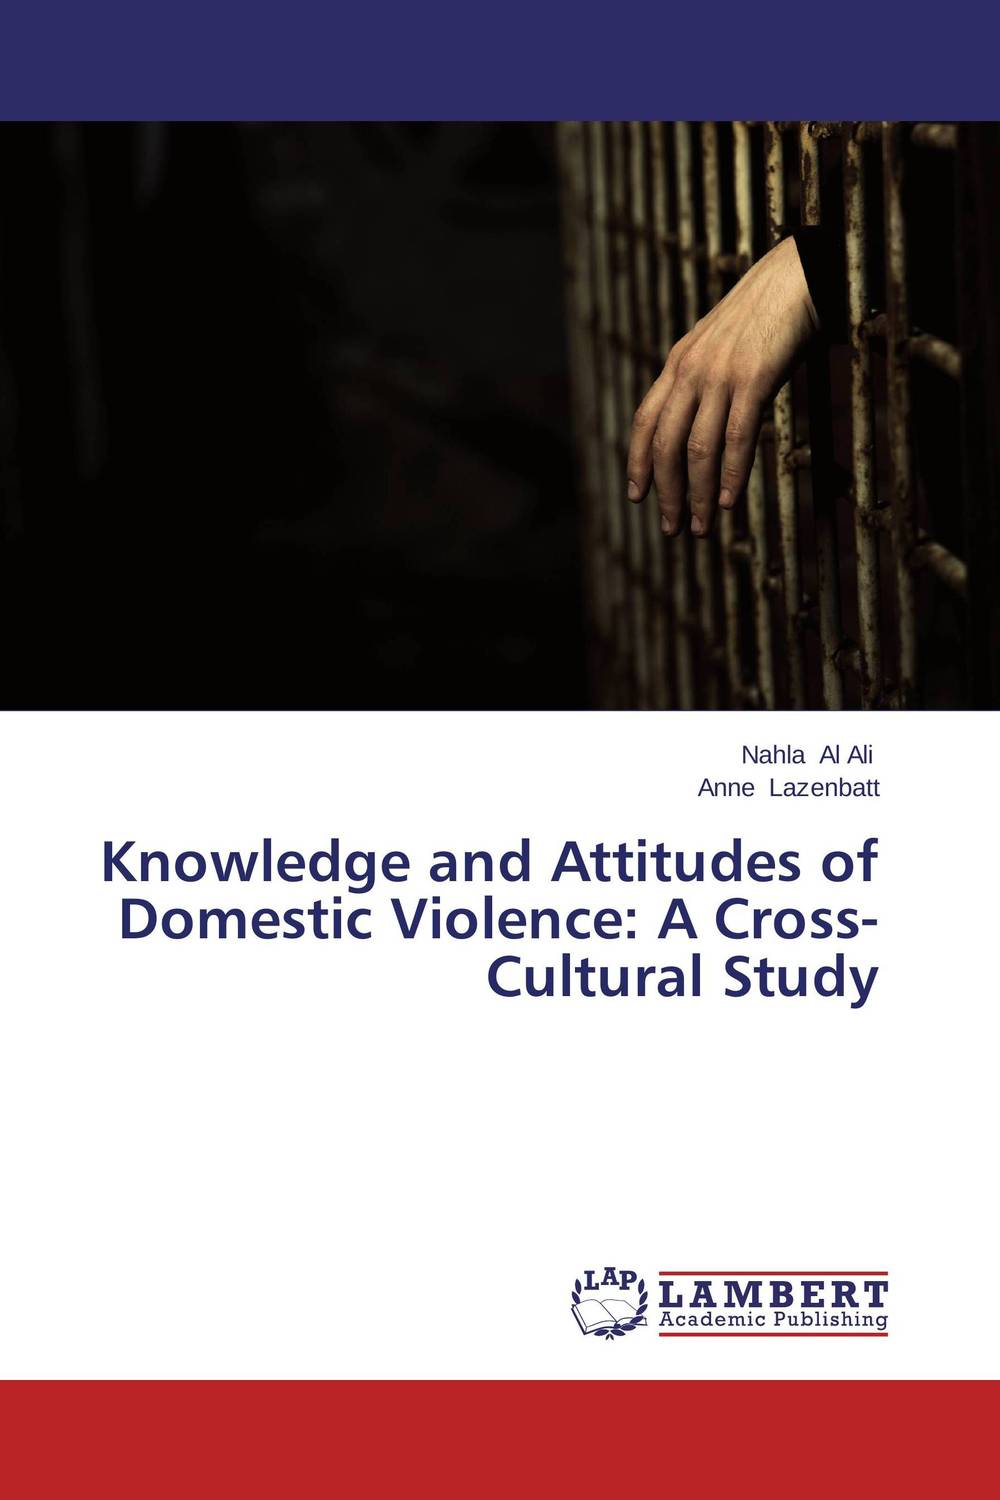 цена на Knowledge and Attitudes of Domestic Violence: A Cross-Cultural Study